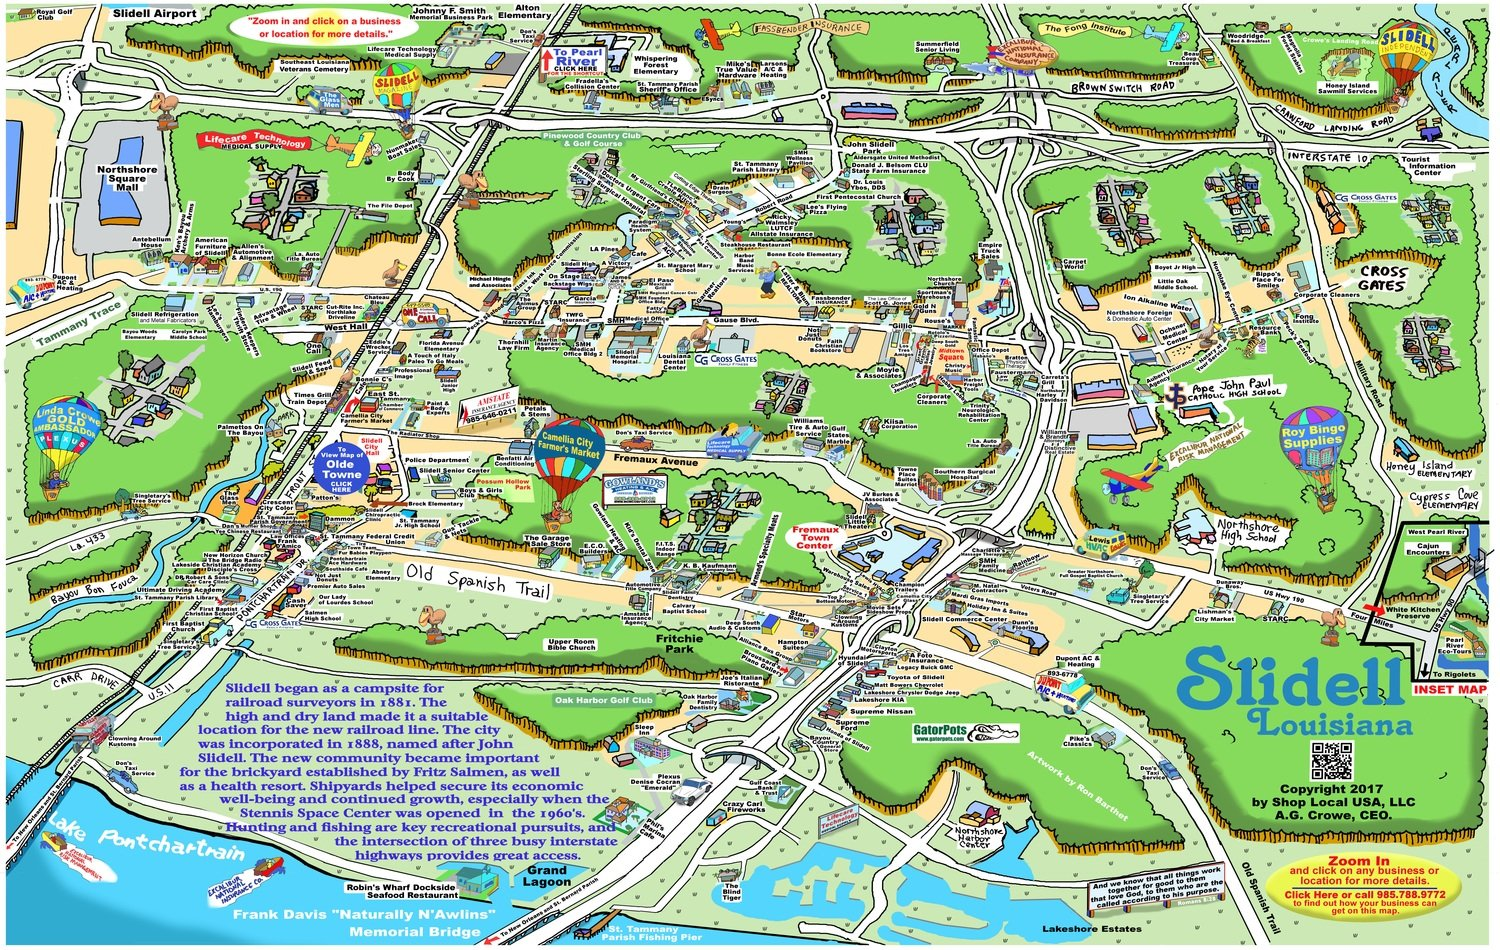 """24"""" X 36"""" Full Color Caricature Rendering of Slidell, LA"""